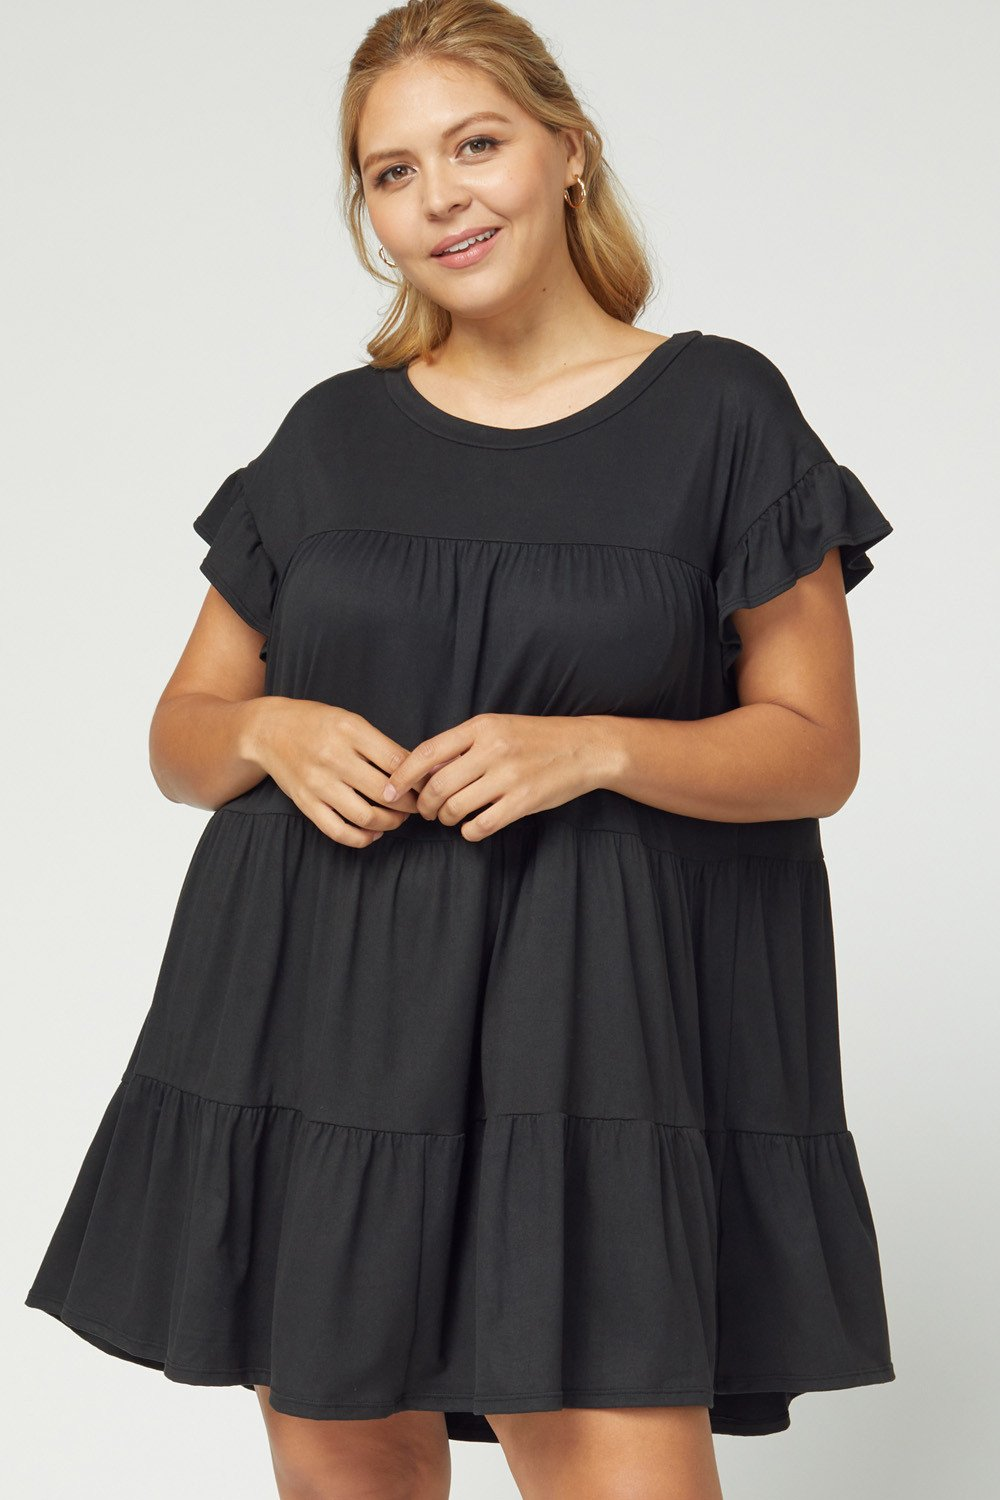 ENTRO INC Women's Dress Solid Tiered Scoop-Neck Dress - Plus Size || David's Clothing